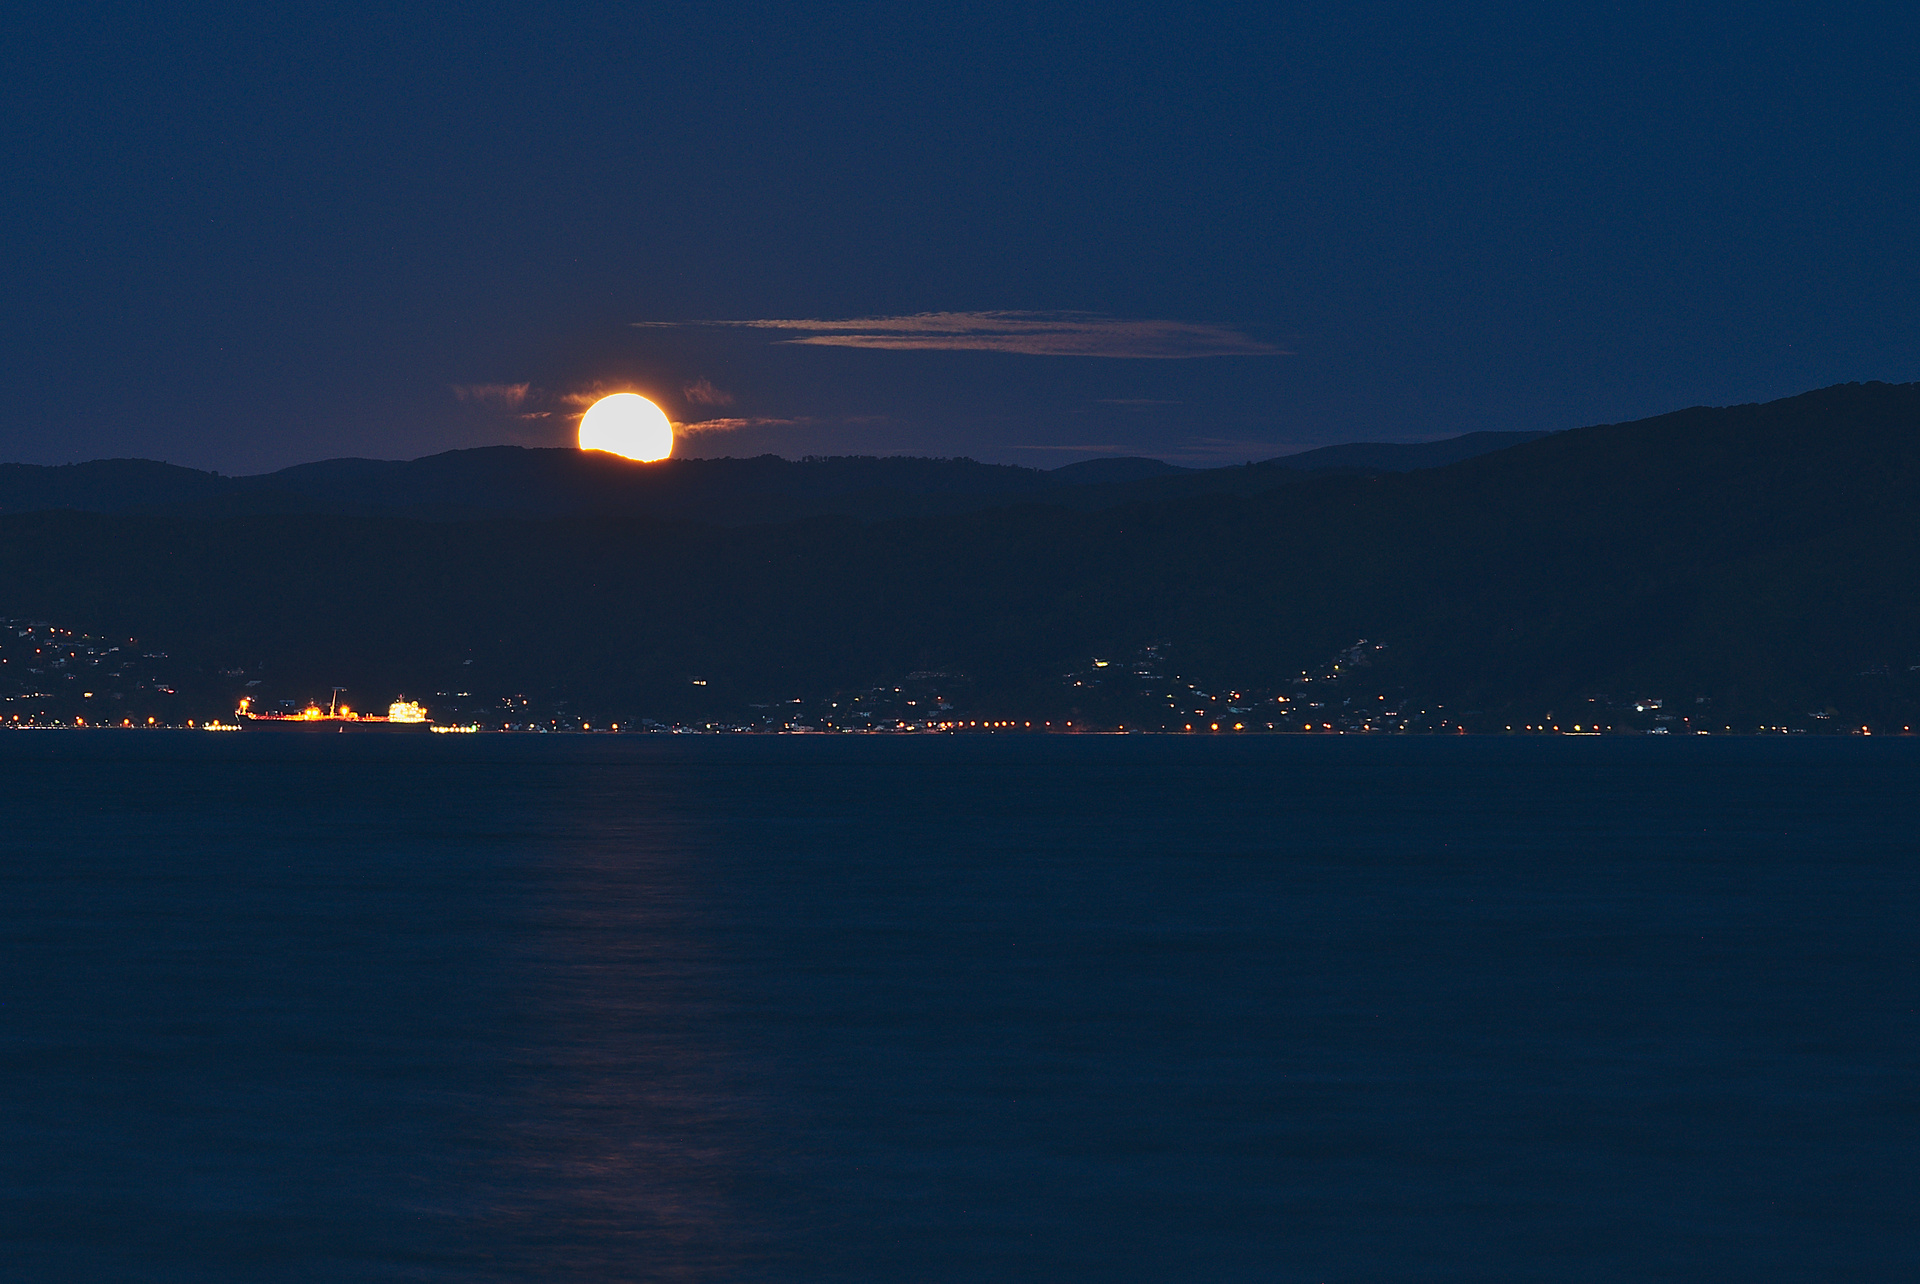 At the end of the blue hour the full moon started to rise over Eastbourne